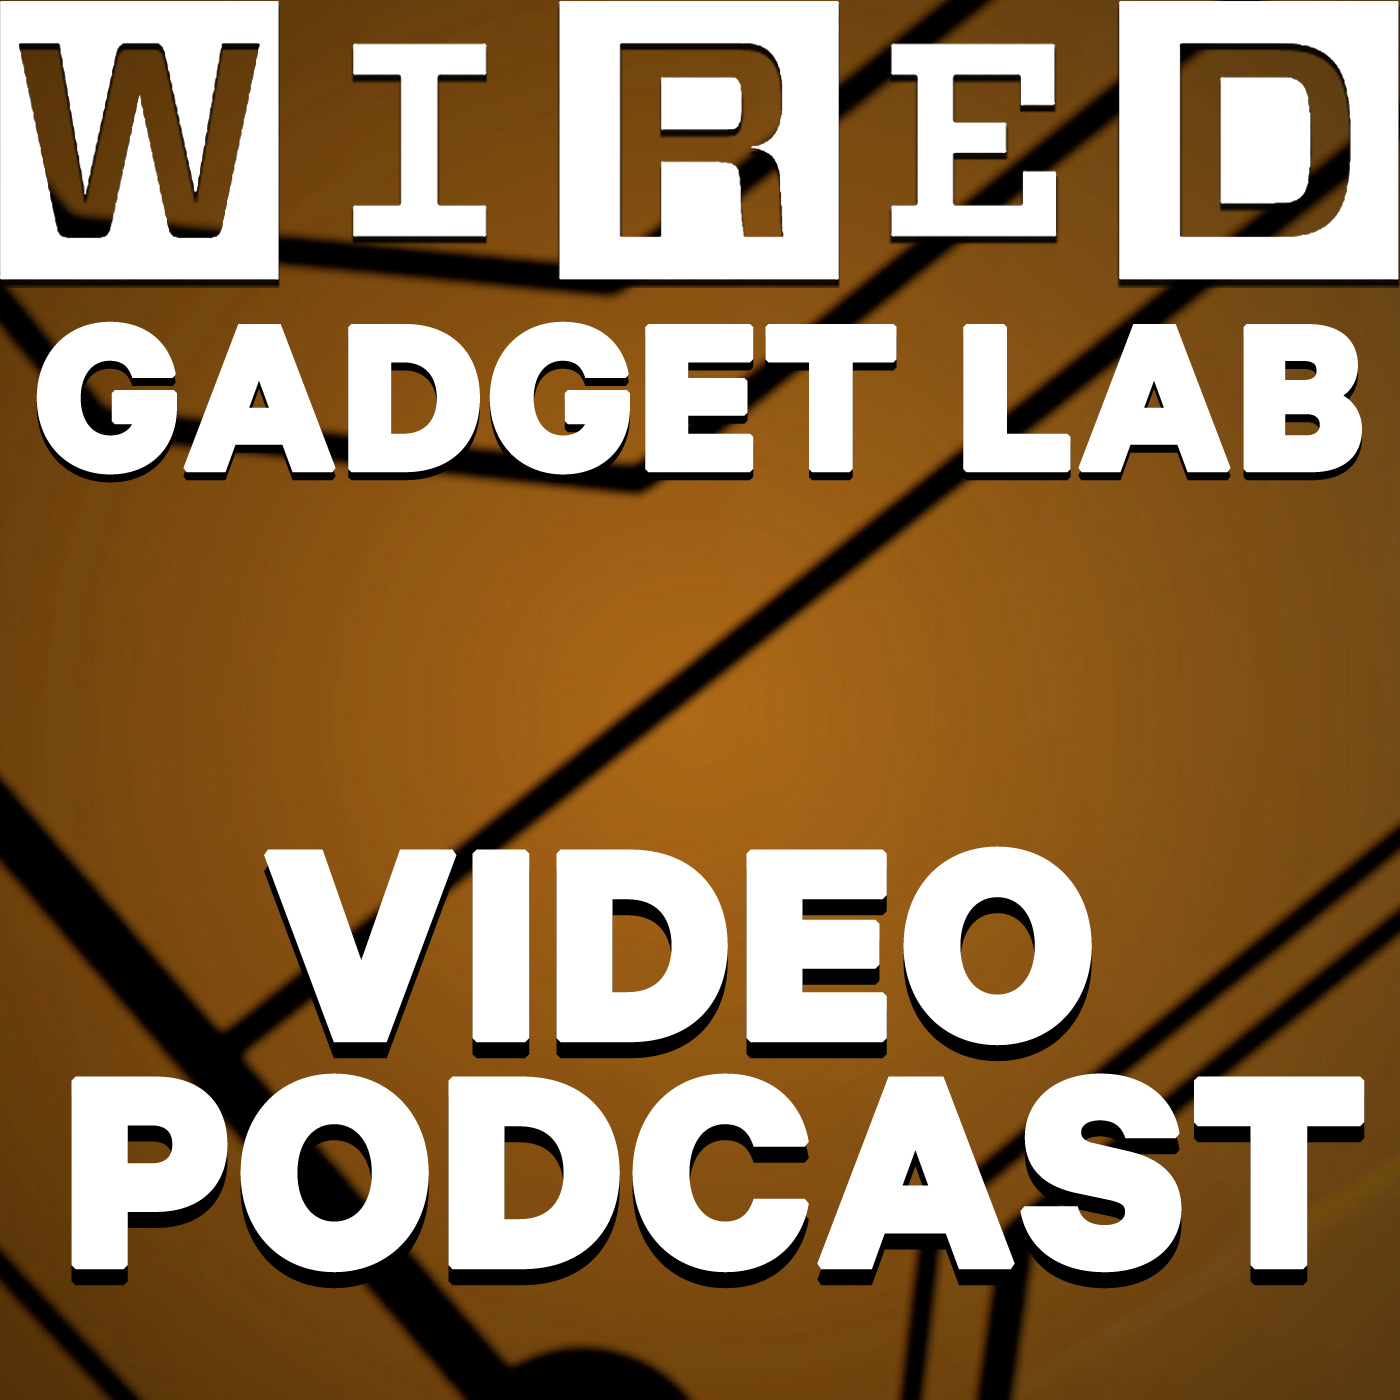 Wired's Gadget Lab Video Podcast